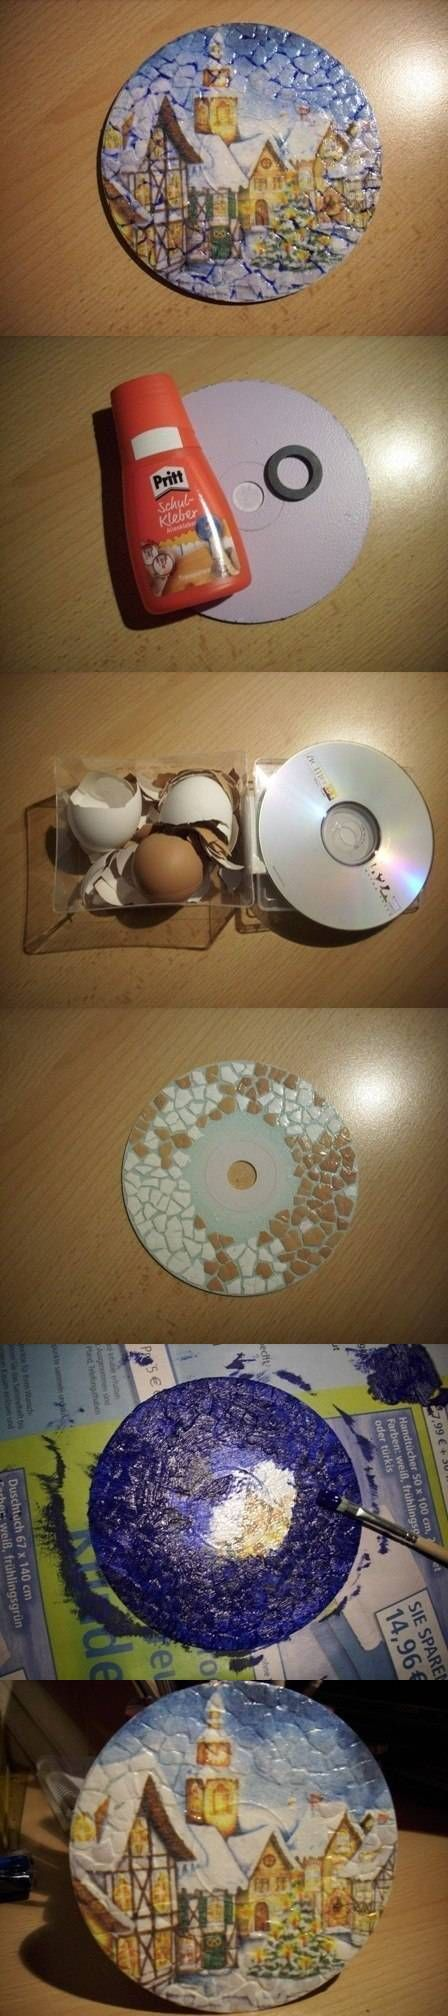 DIY Eggshell Decoupage DIY Eggshell Decoupage    CD